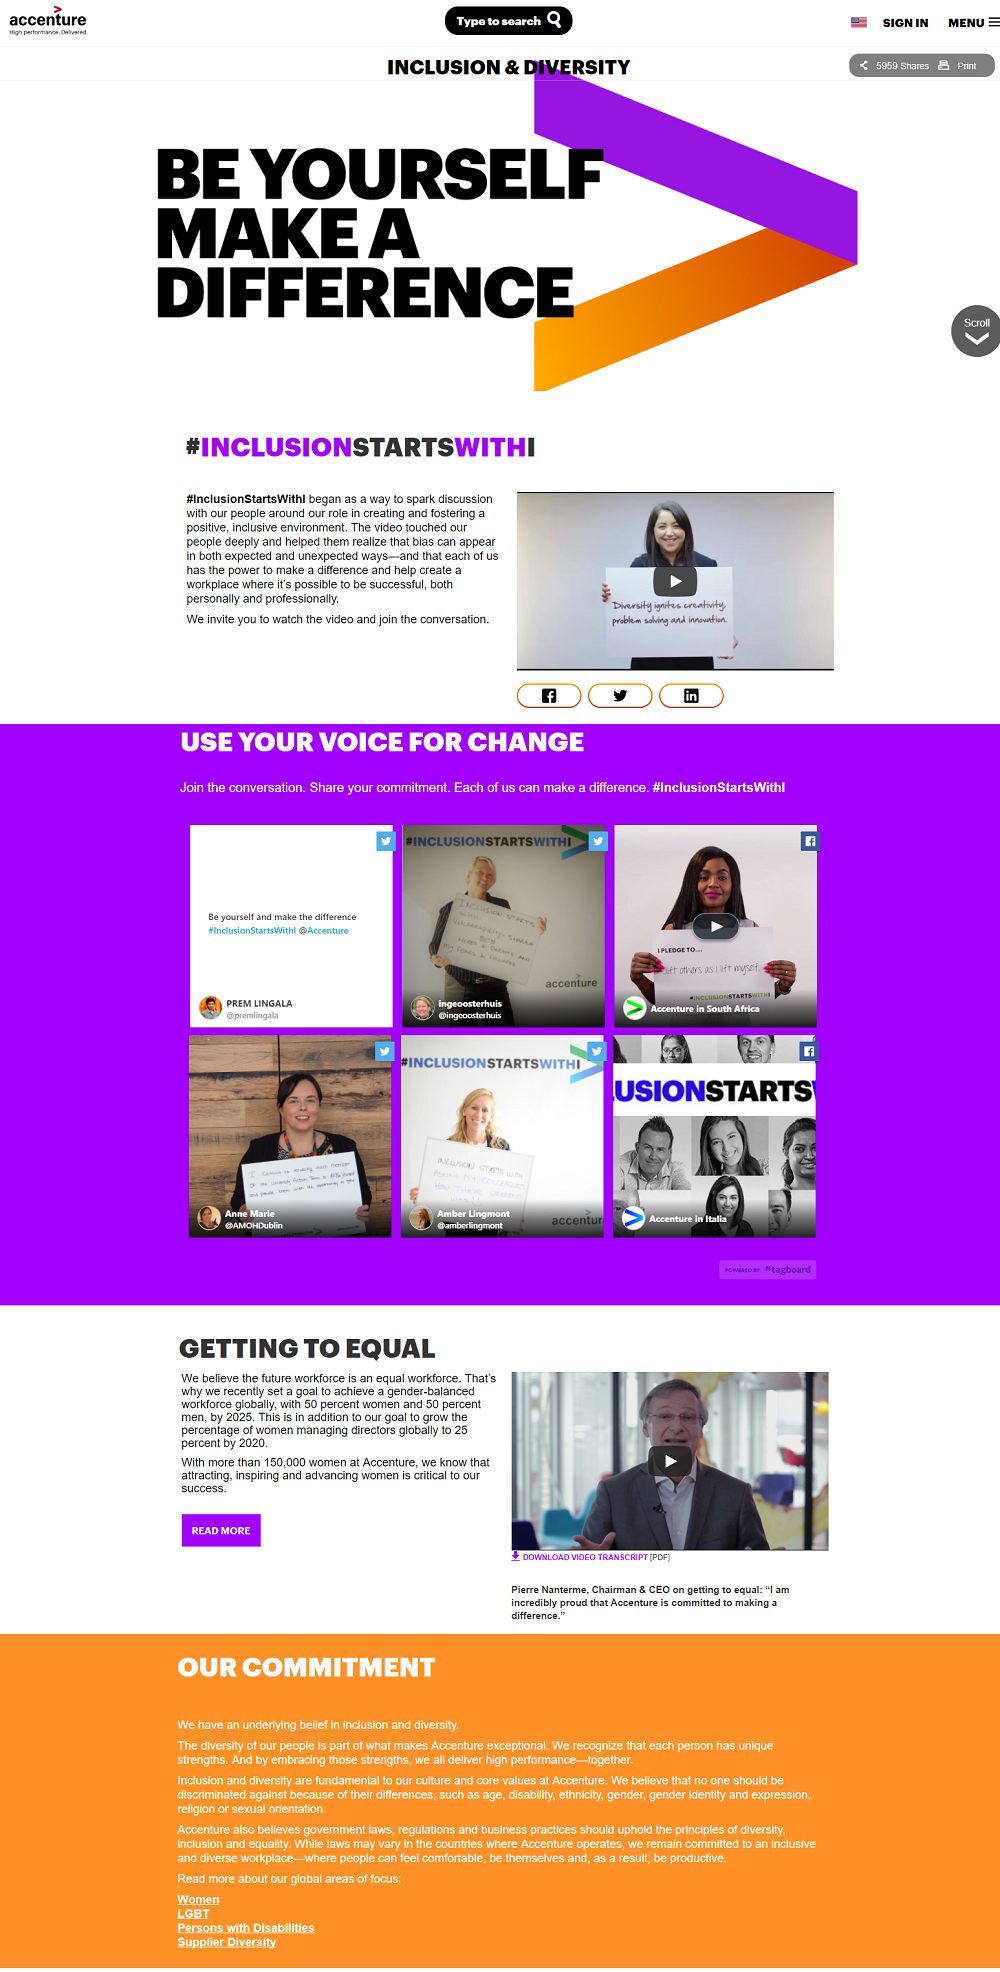 Accenture Company Diversity Page